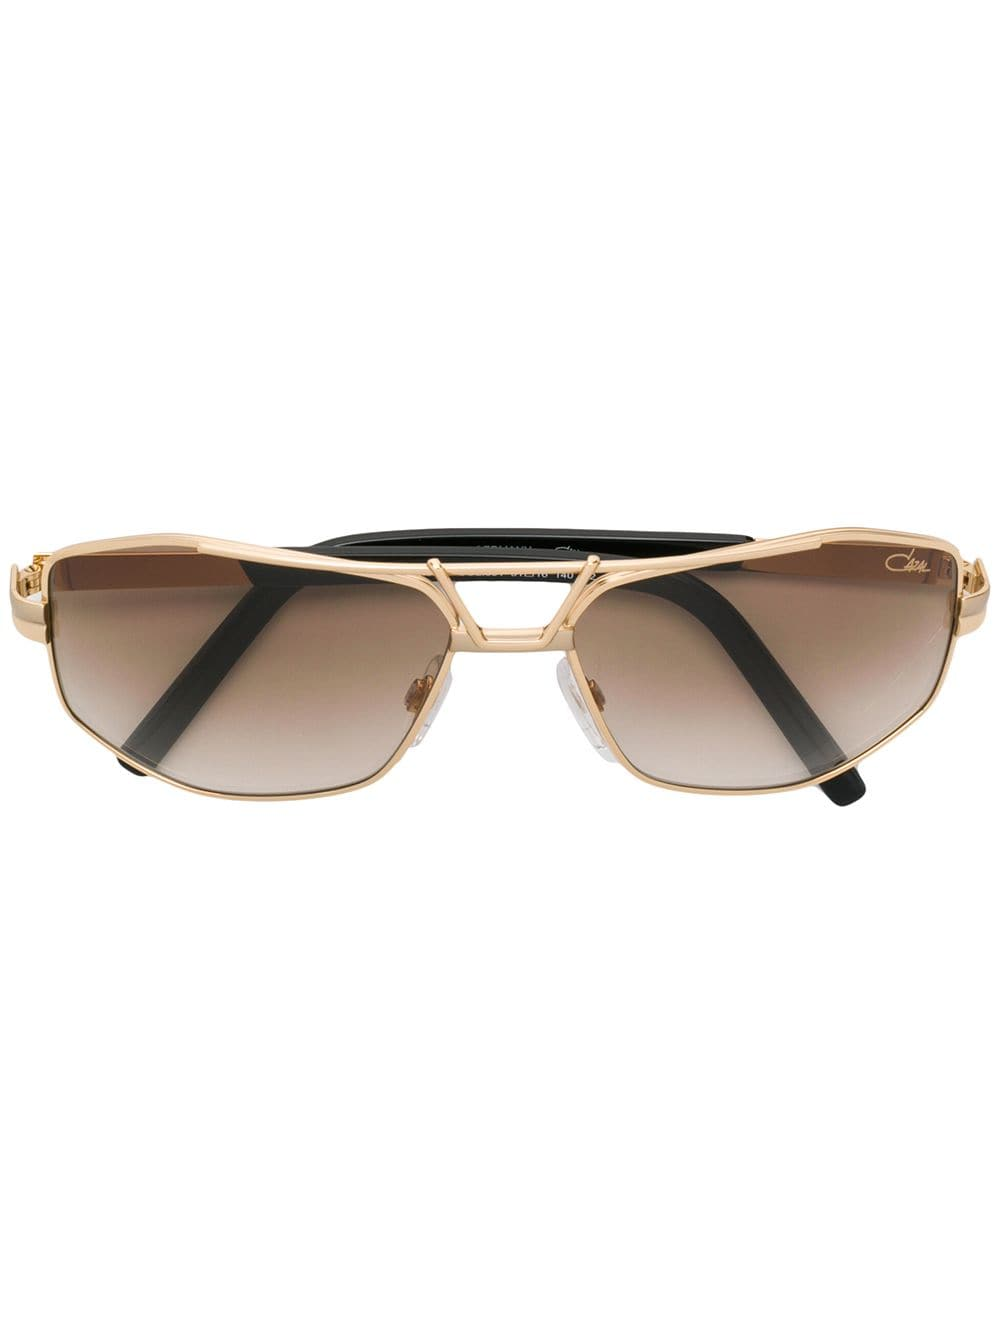 ee55a2e64f91 cazal-square-tinted-sunglasses-metallic-farfetch-com-photo.jpg 1550865051